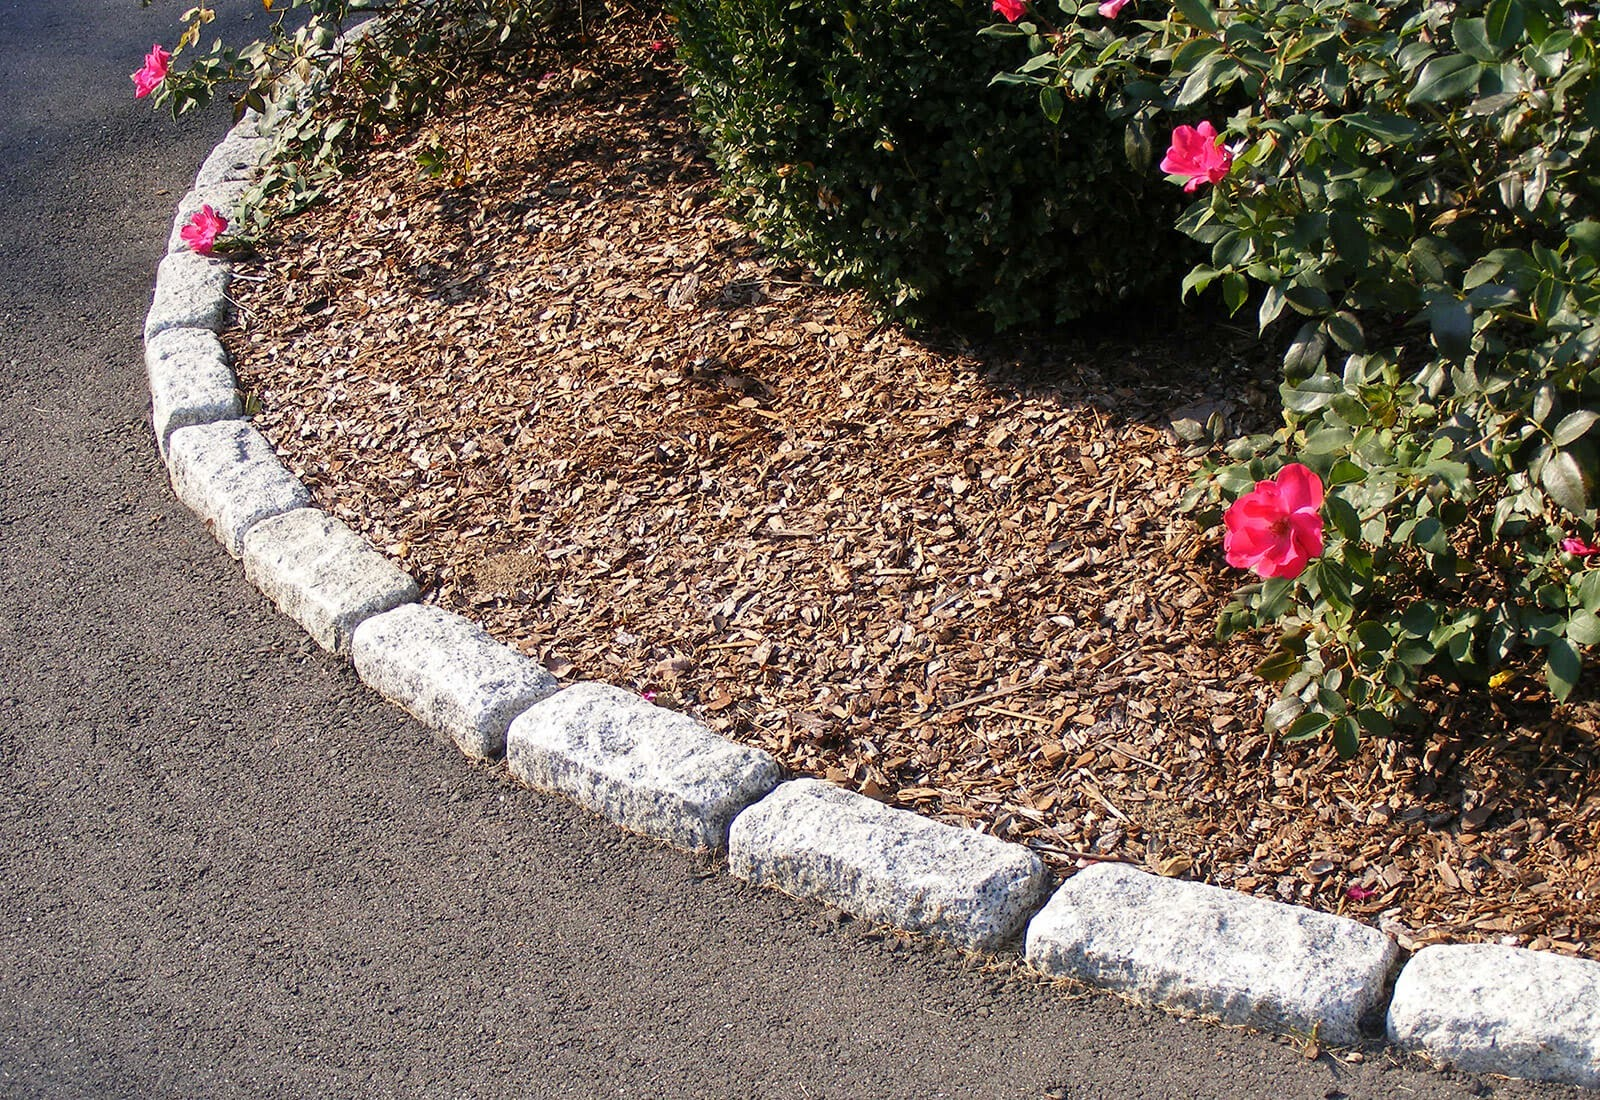 Standard granite cobblestones edge the planter bed